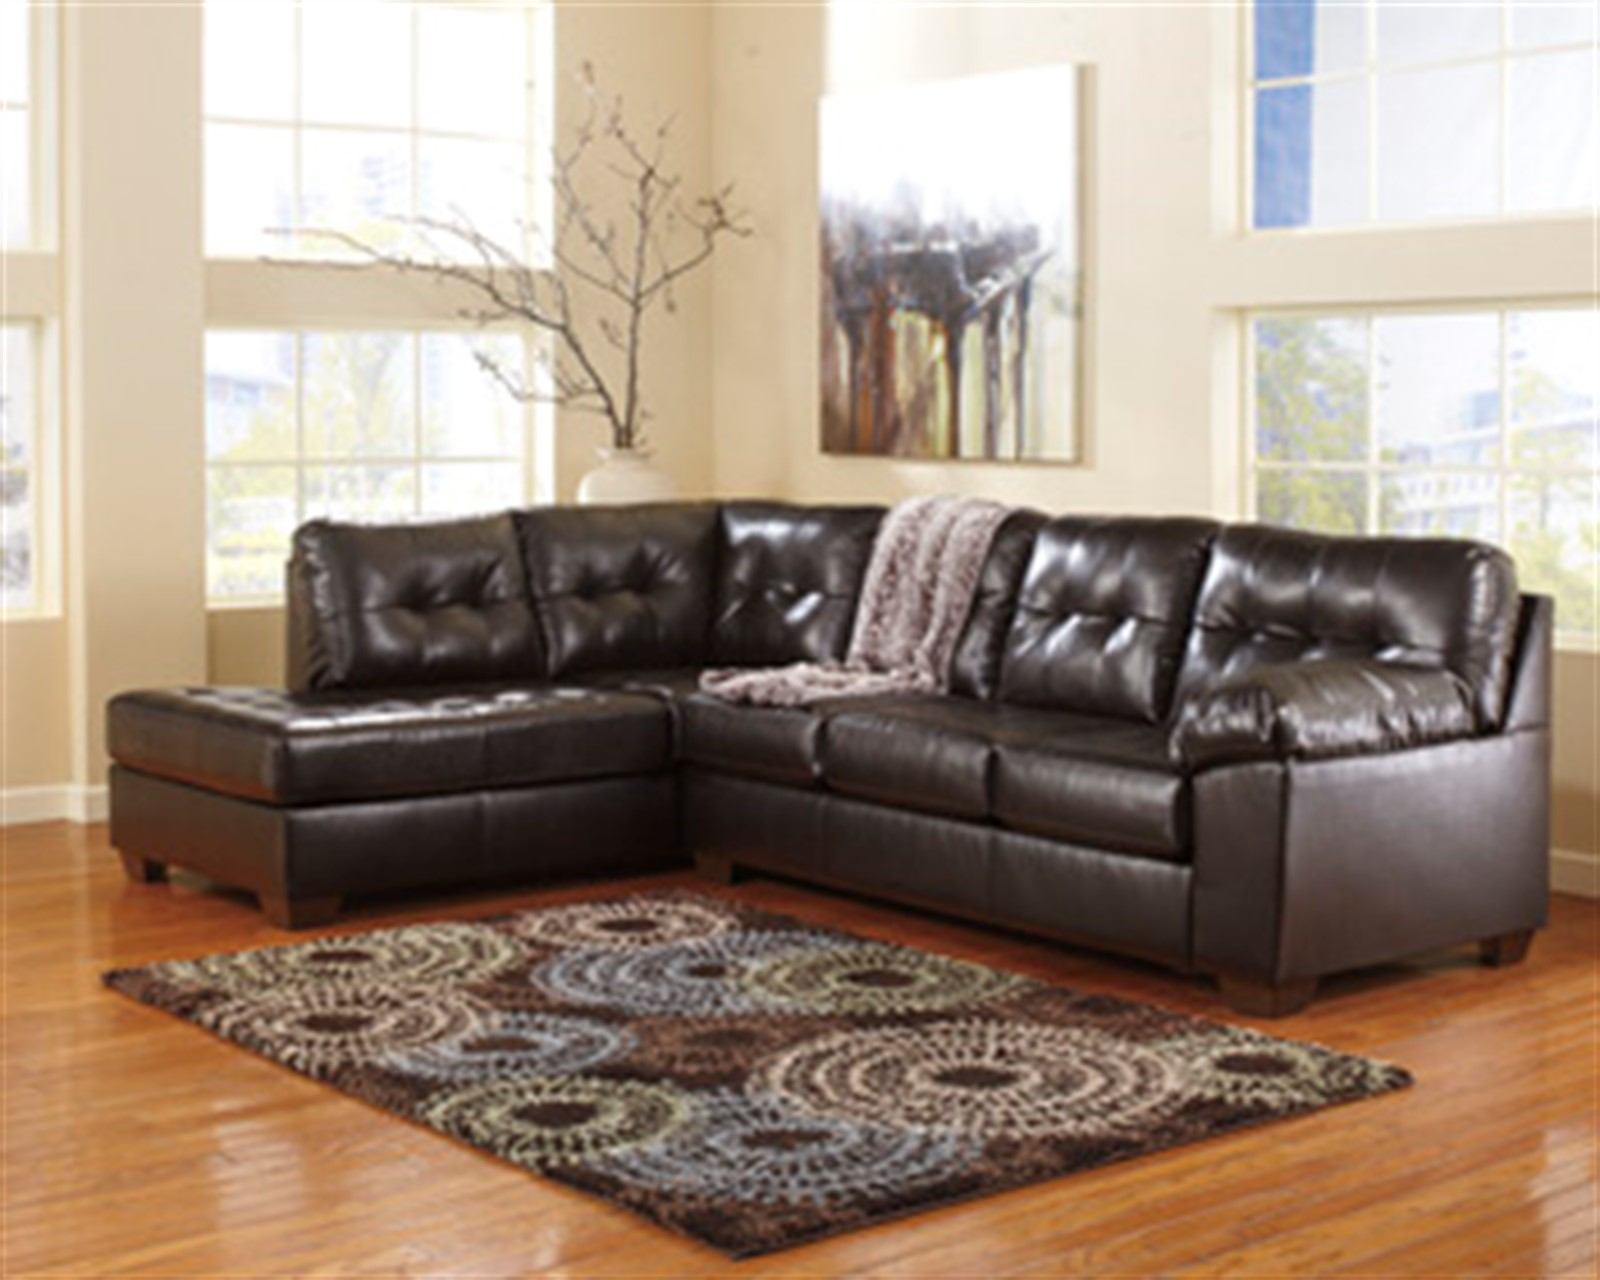 Signature Design by Ashley Alliston DuraBlend® Chocolate Sectional